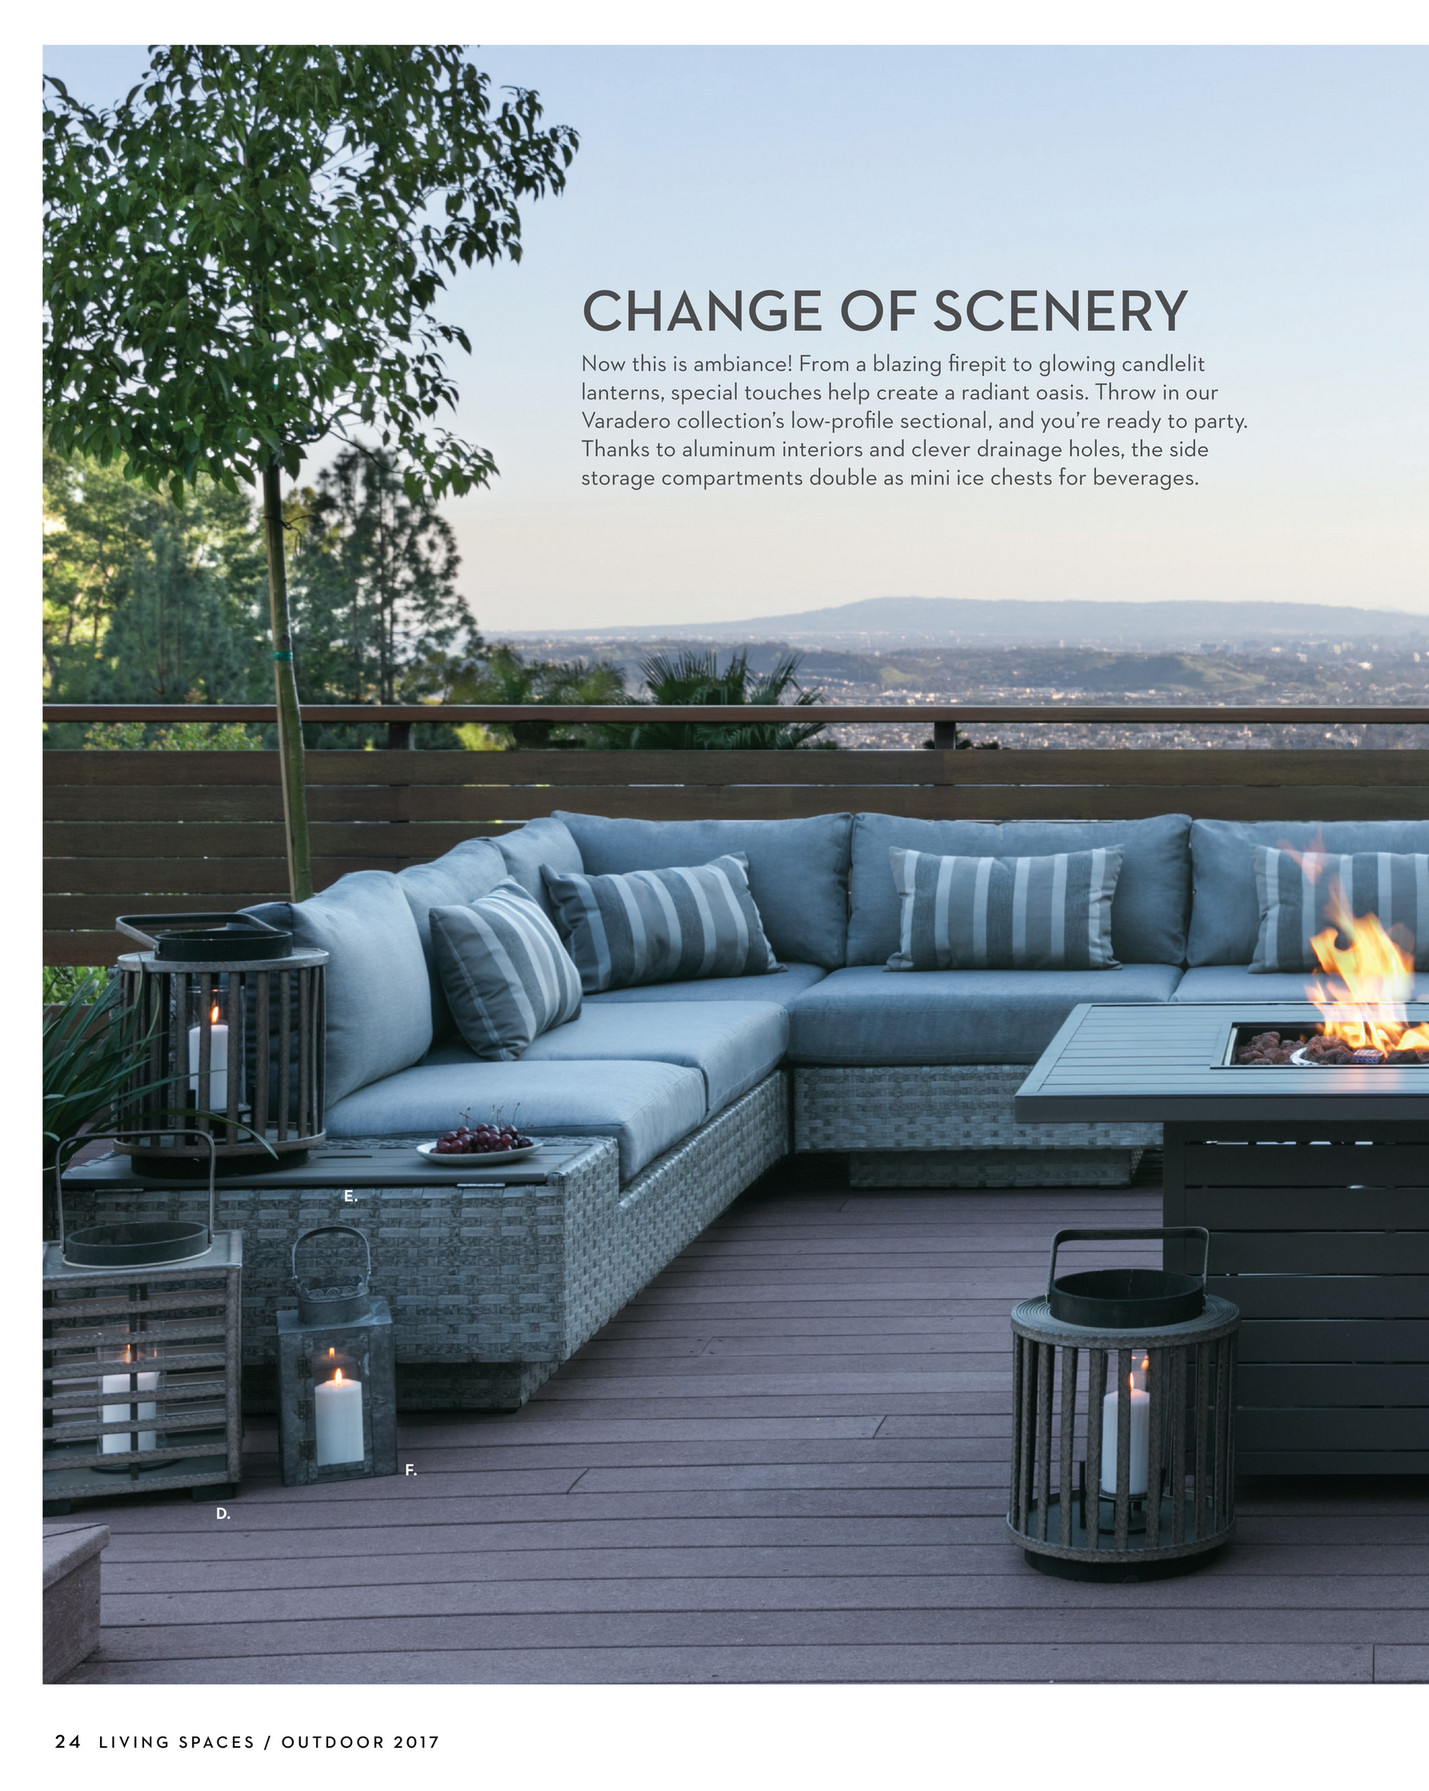 Living Spaces Product Catalog Outdoor 2017 Page 24 25